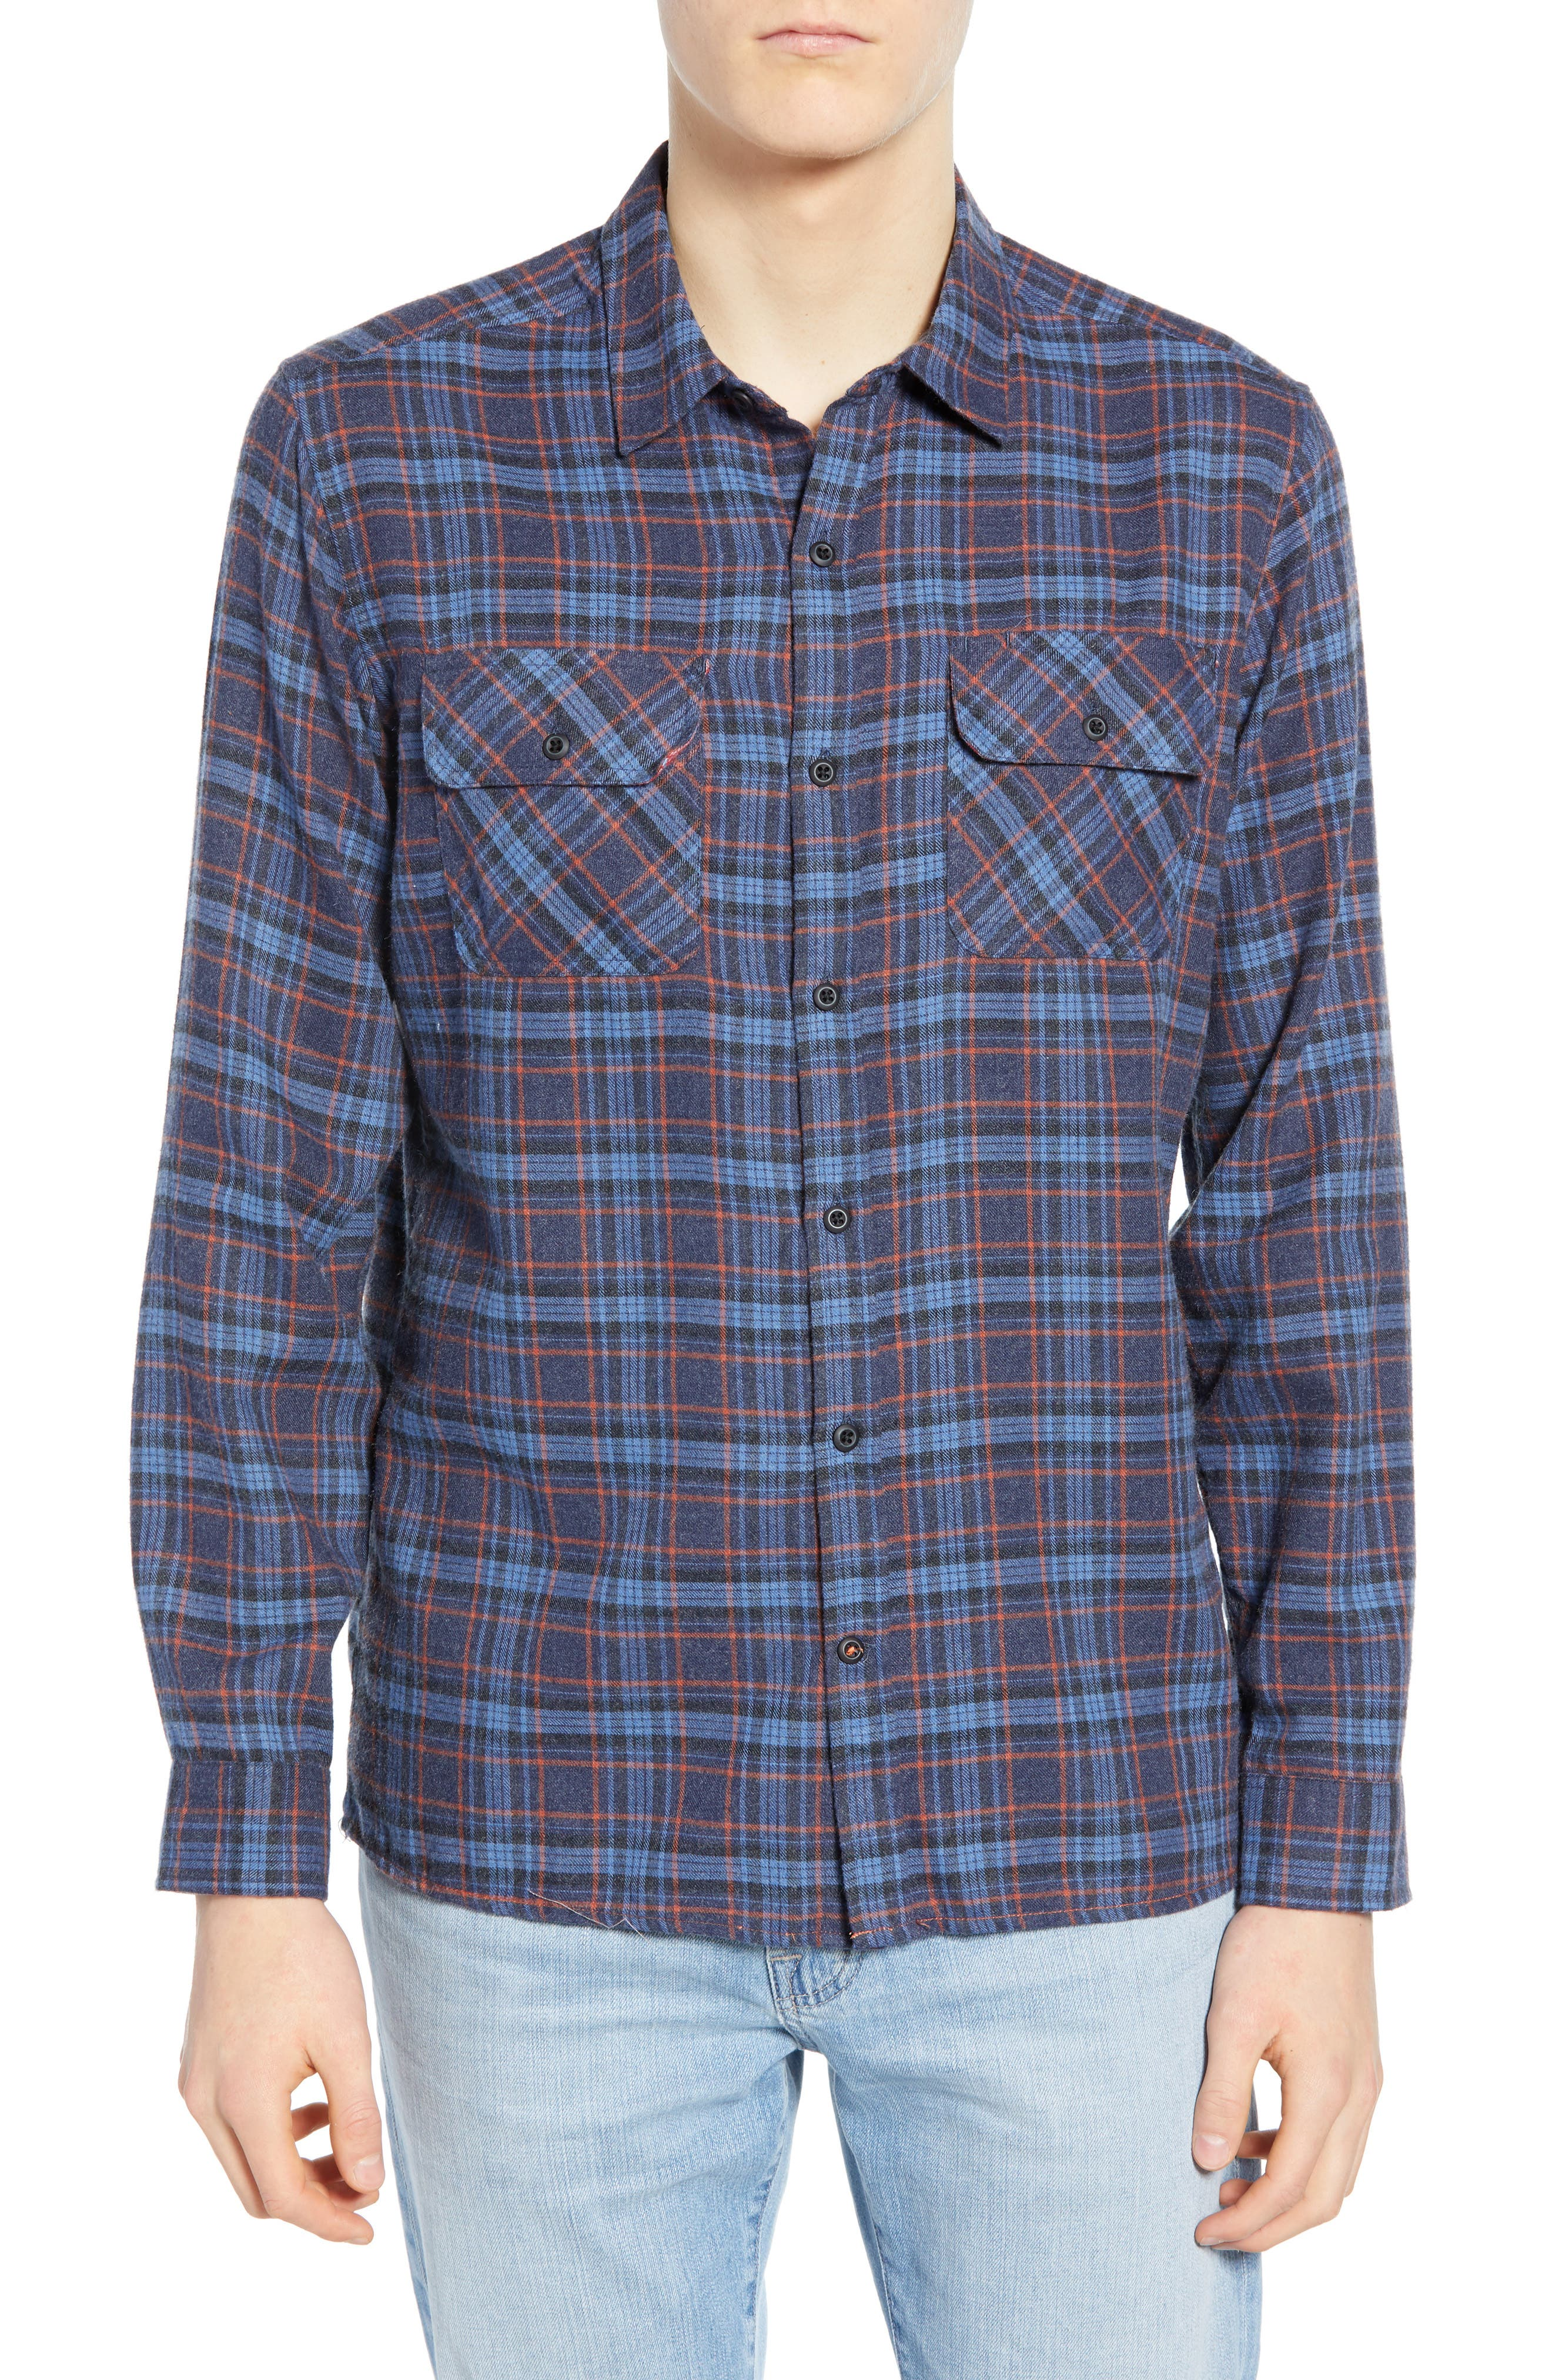 Hurley Walker Plaid Flannel Shirt, Grey